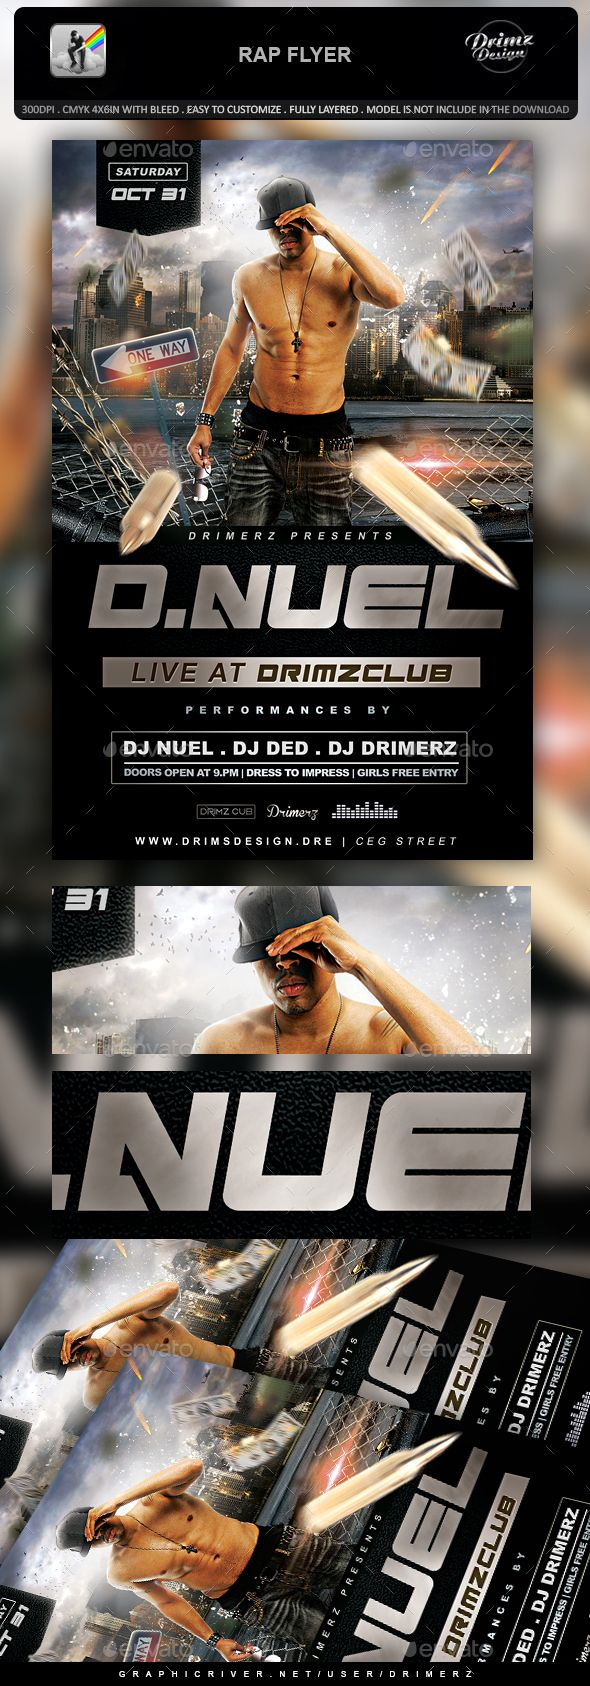 rap flyer flyer template template and font logo